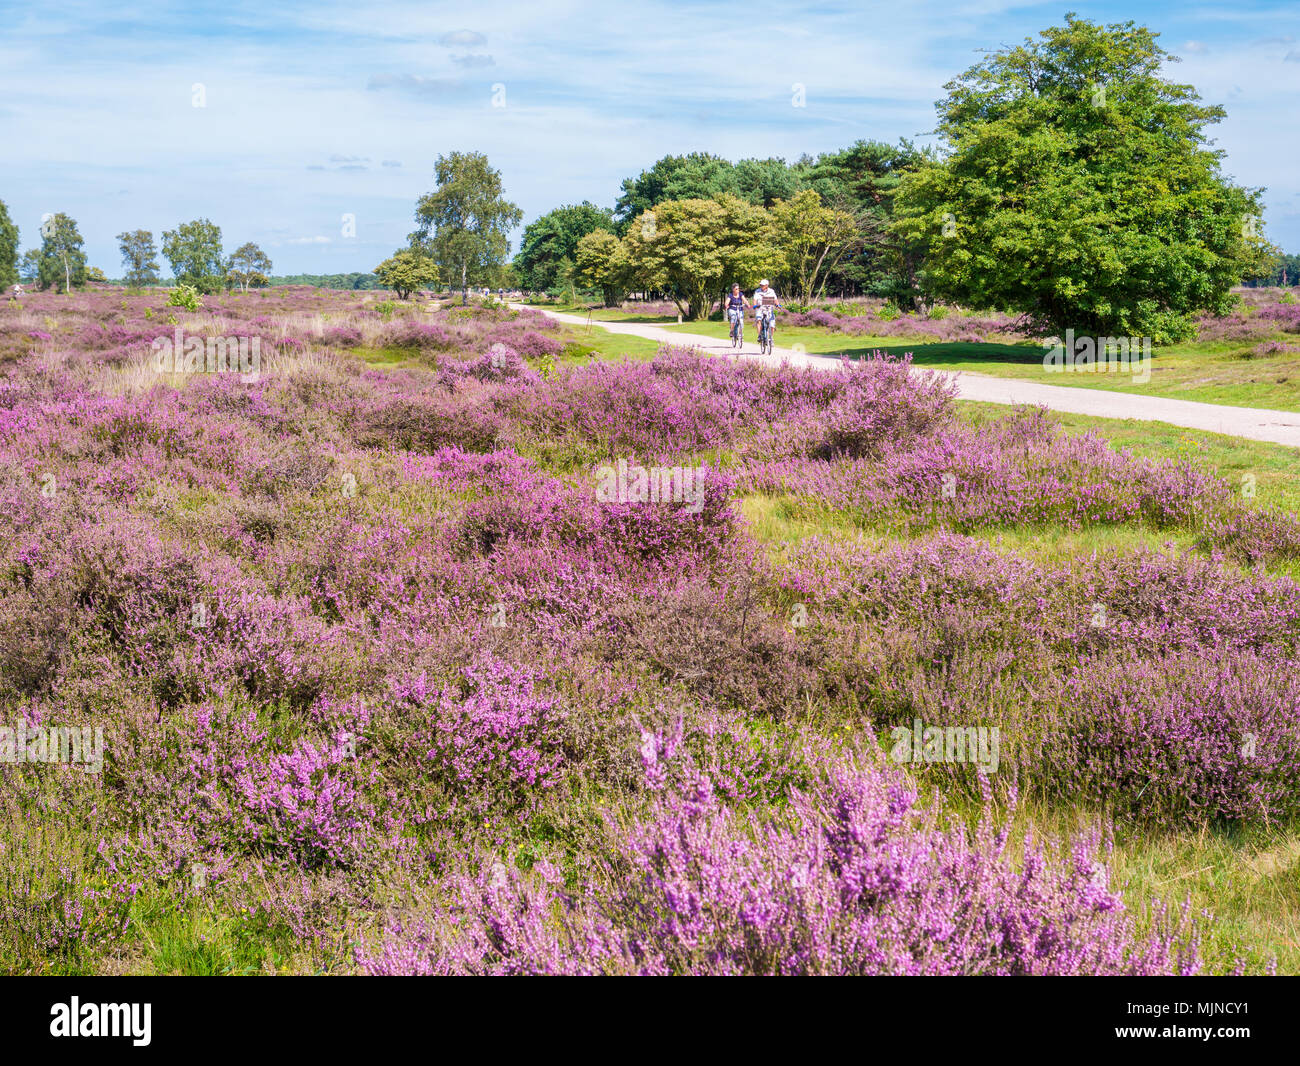 Active people riding bicycle on path through purple blooming heather on South Heath near Hilversum, Gooi, Netherlands Stock Photo